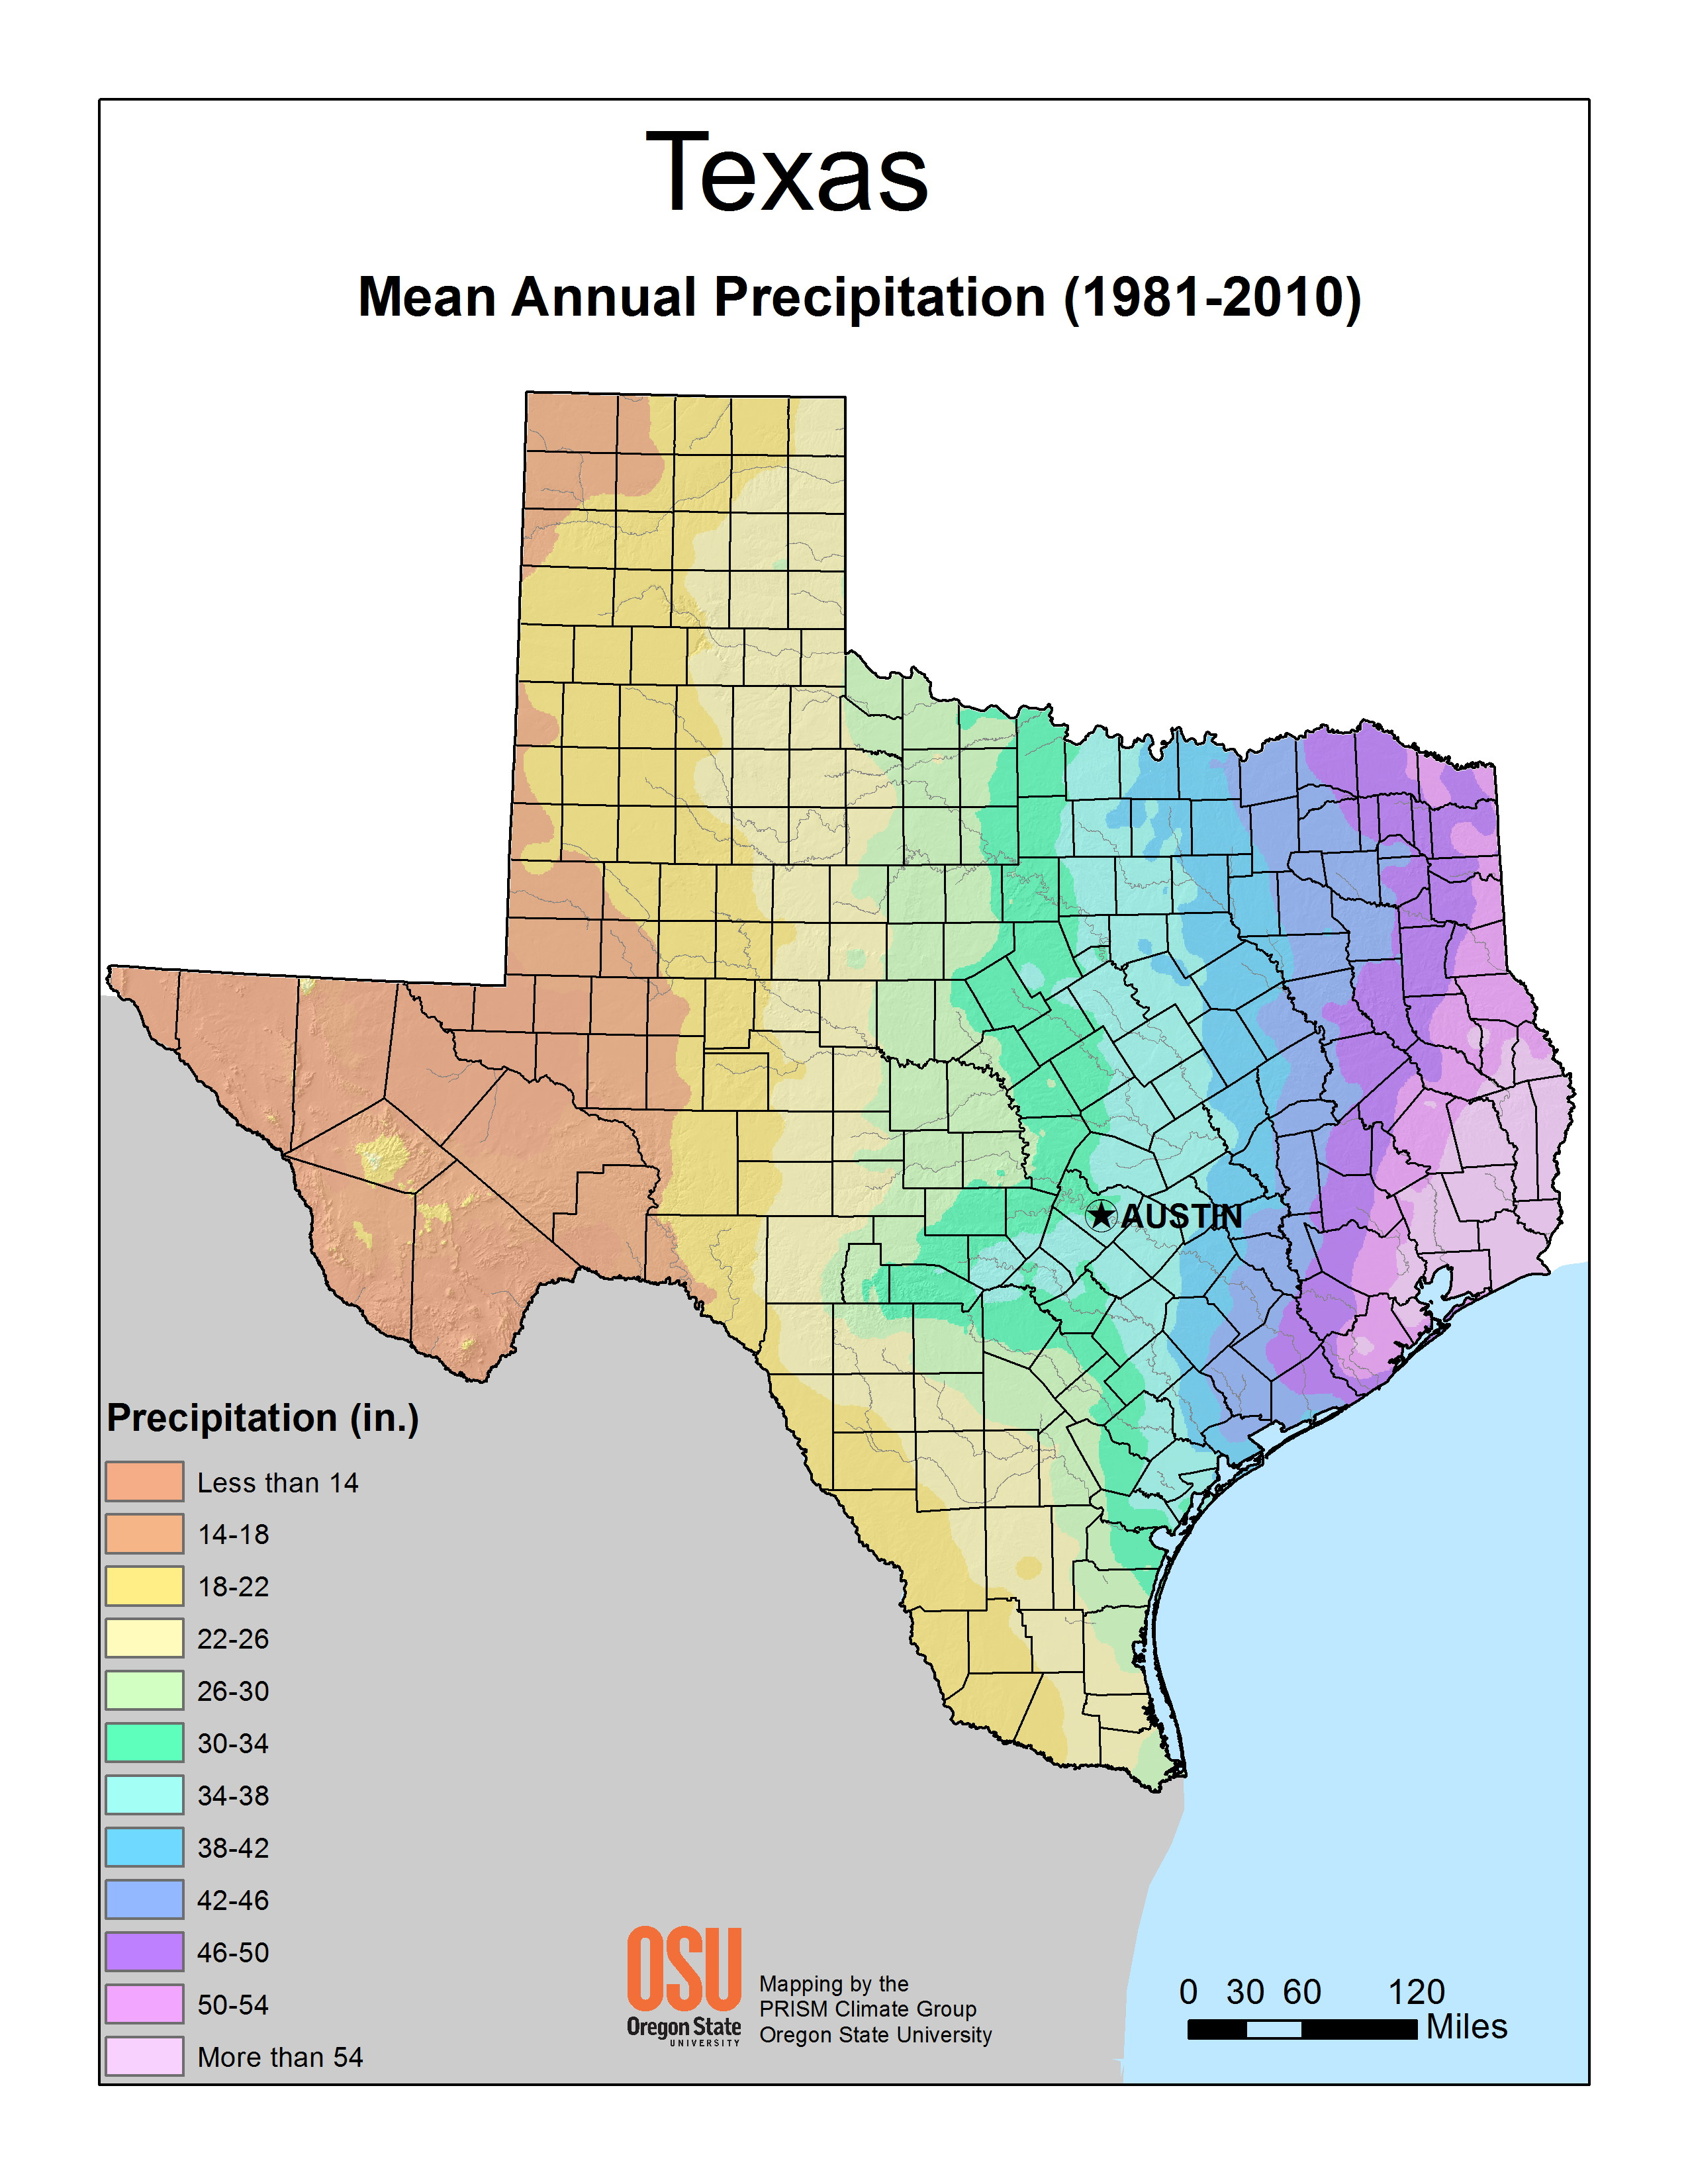 Texas Mean Annual Precipitation (1981-2010)